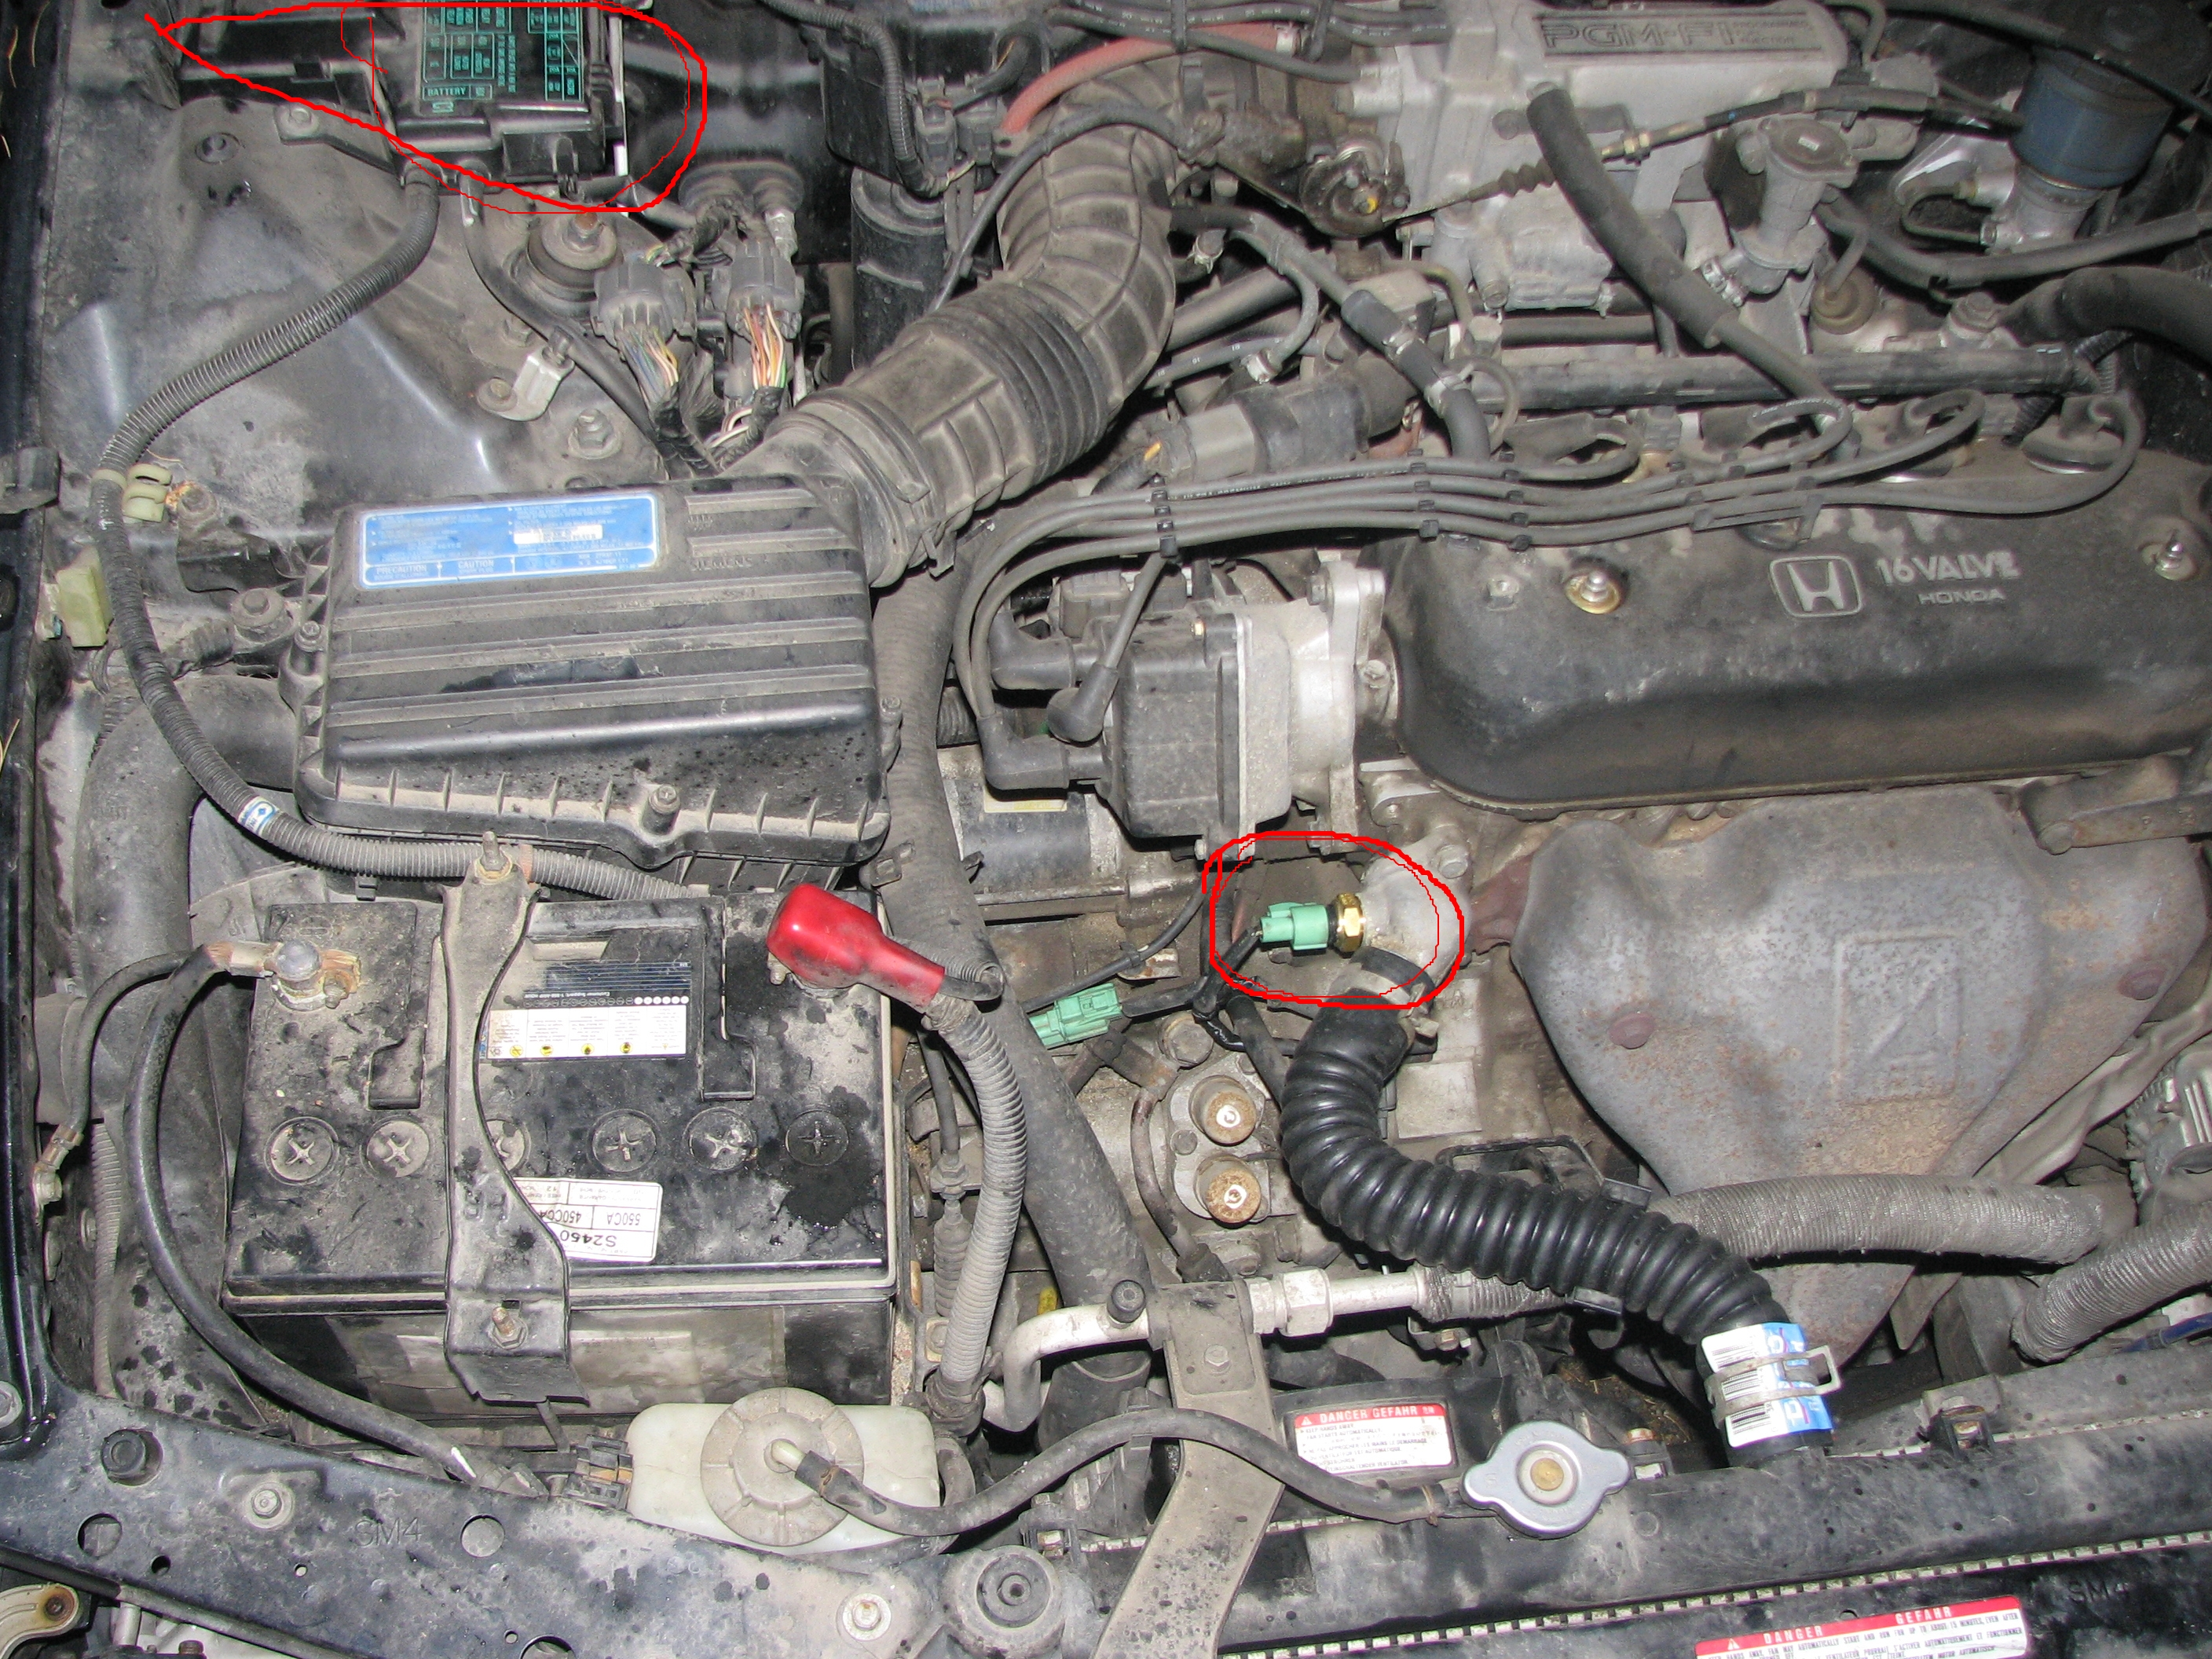 1992 Honda Accord – Fan won't turn off